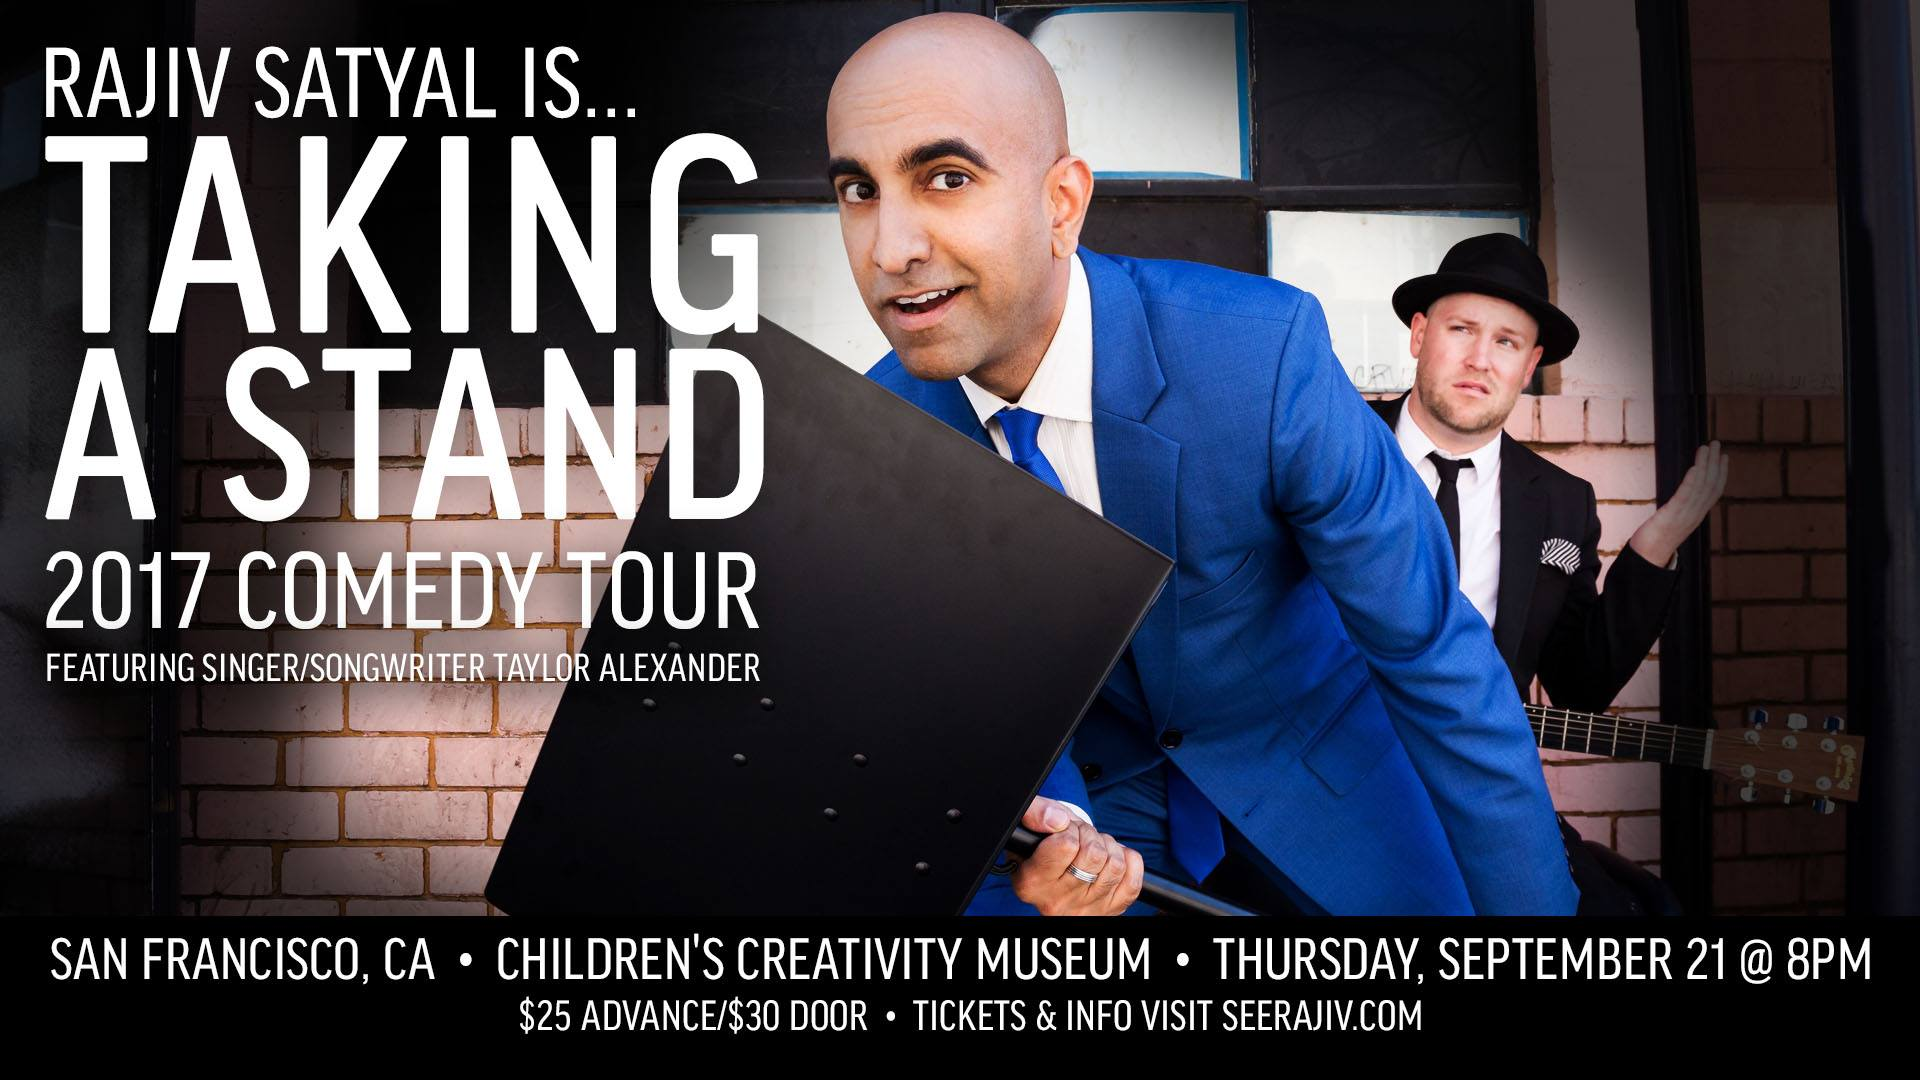 Rajiv Satyal's Taking a Stand Comedy Tour - San Francisco